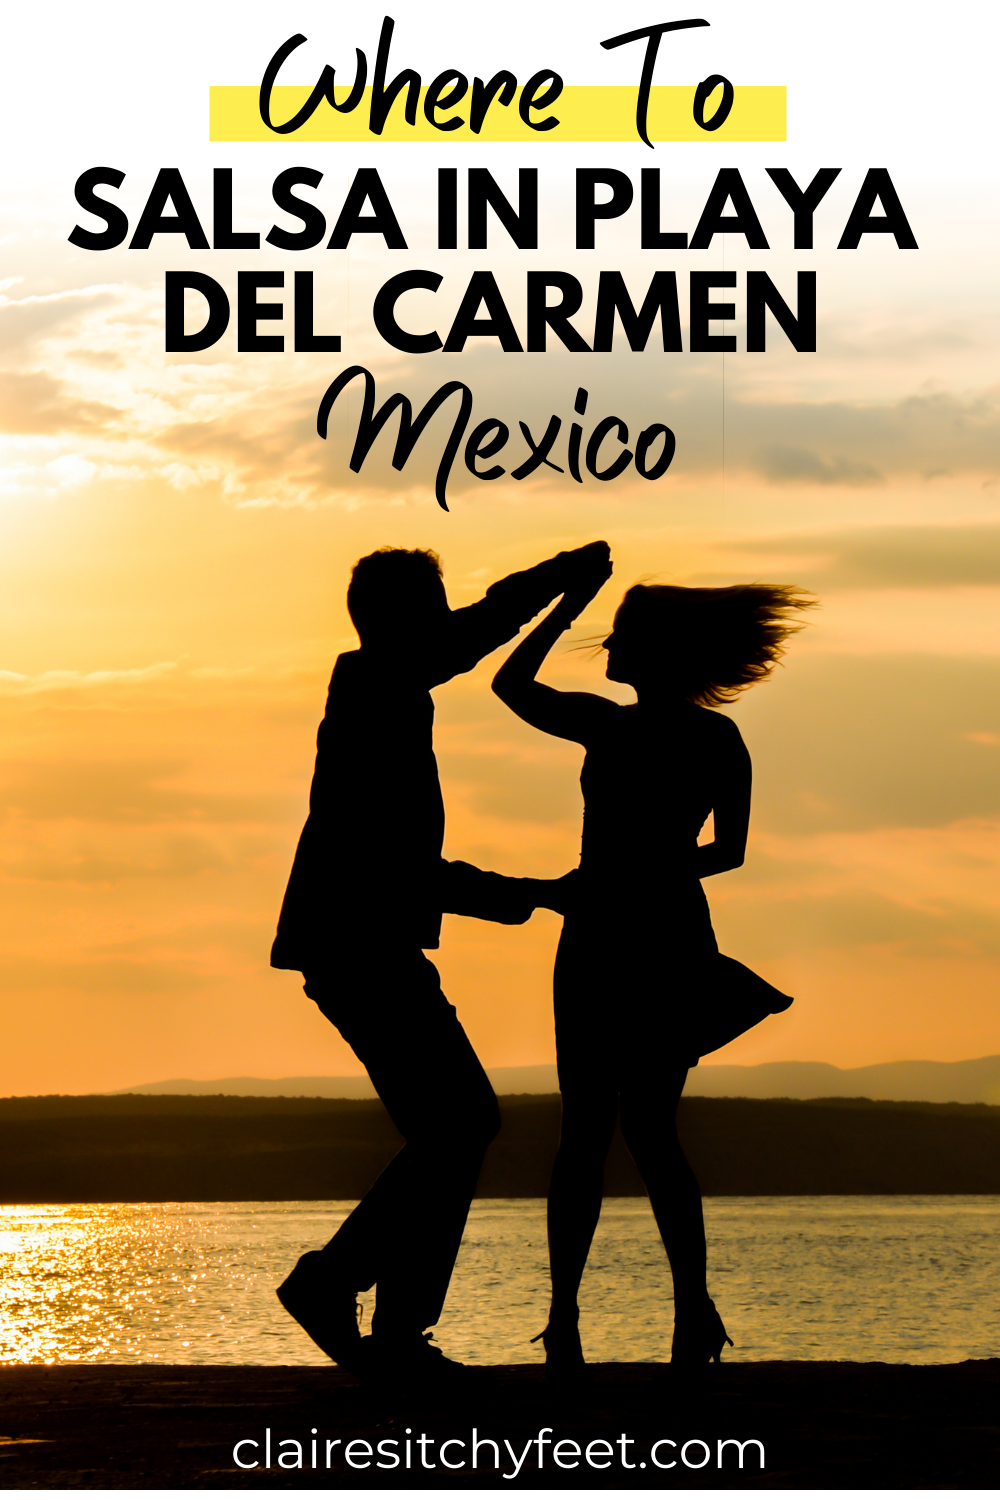 Where to salsa playa del carmen